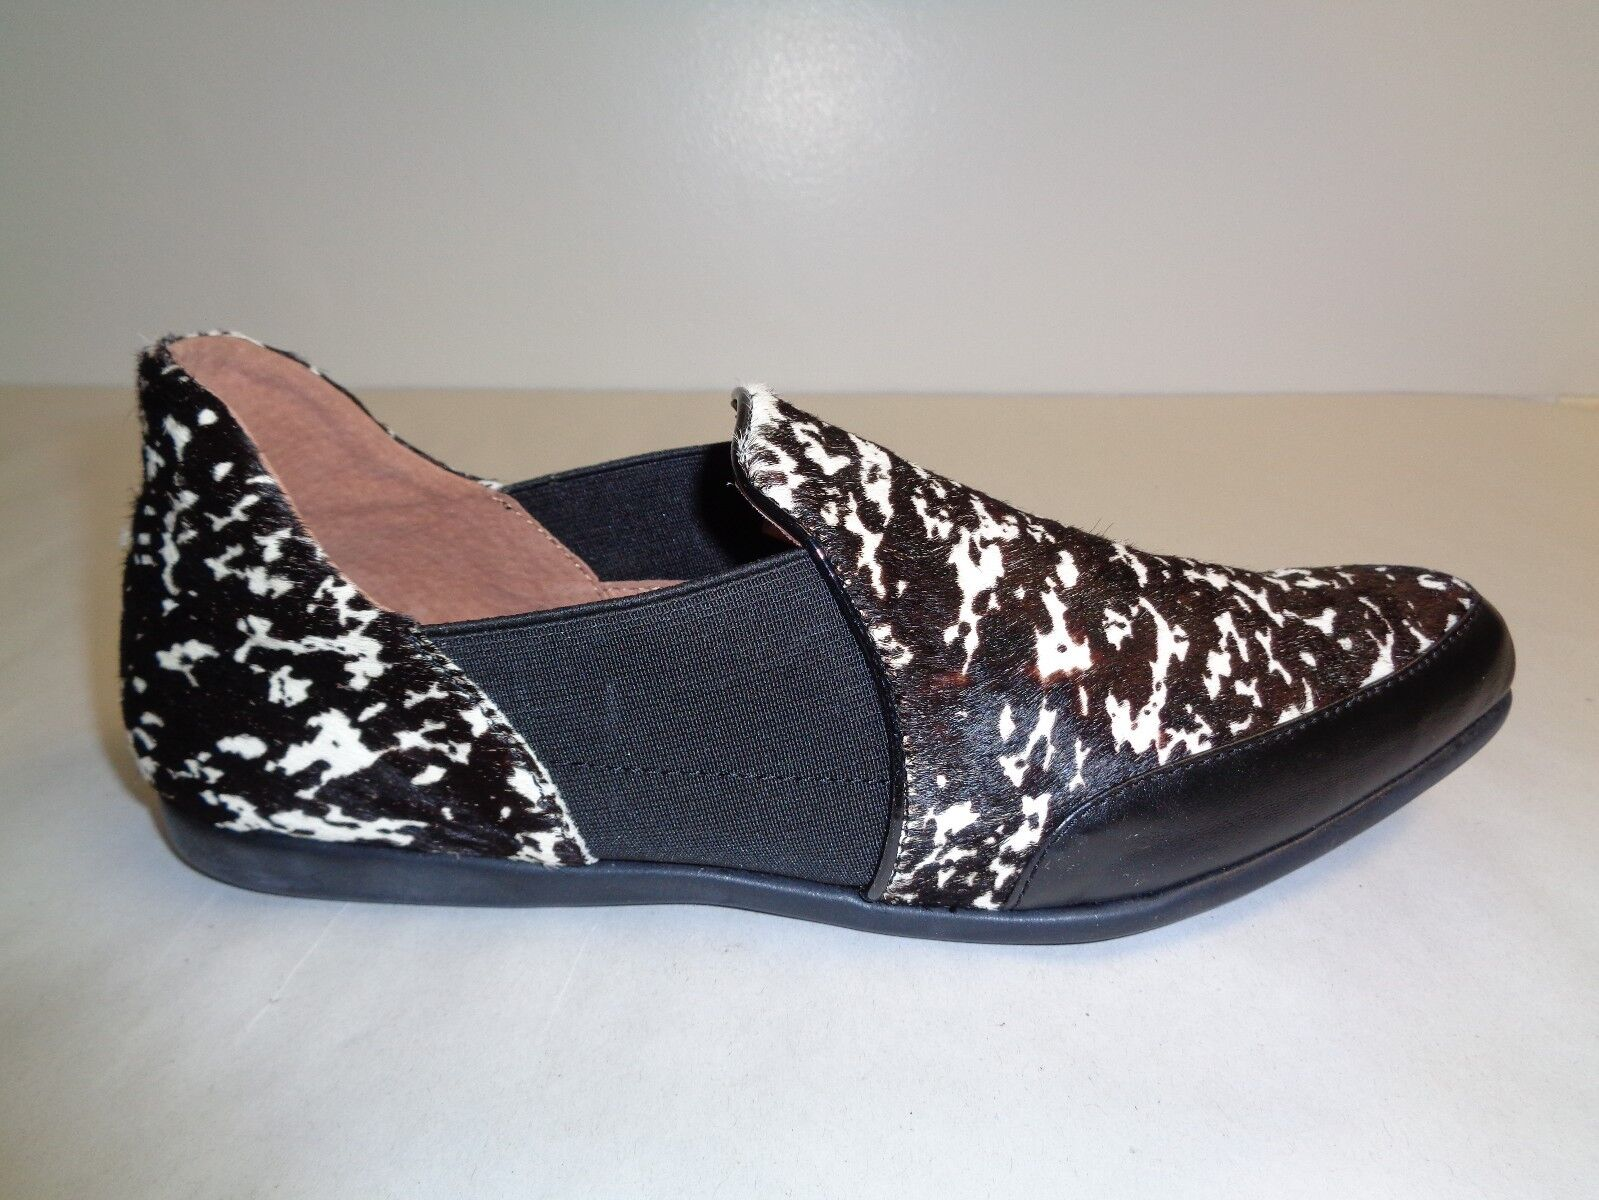 Adrianna Papell Size 7 M LOLA Black Persian Haircalf Flats New Womens shoes